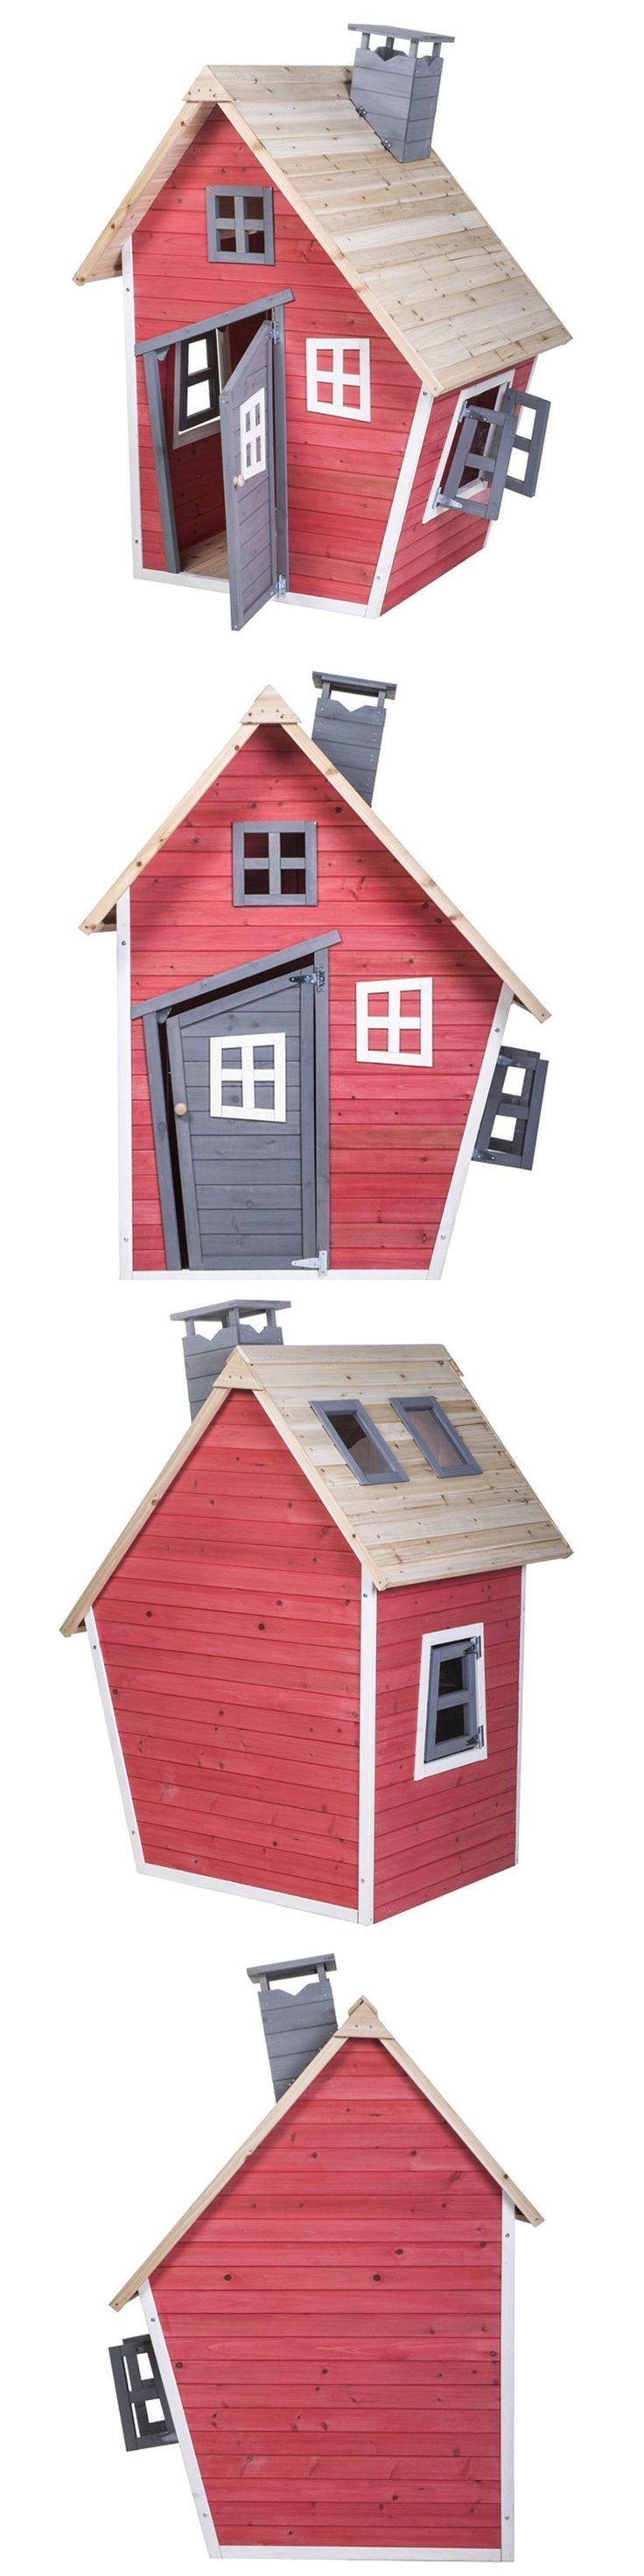 Permanent Playhouses 145995: Children S Wooden Playhouse Indoor Outdoor Playground Backyard Kids Playset -> BUY IT NOW ONLY: $421 on eBay! #childrensindoorplayhouse #kidsoutdoorplayhouse